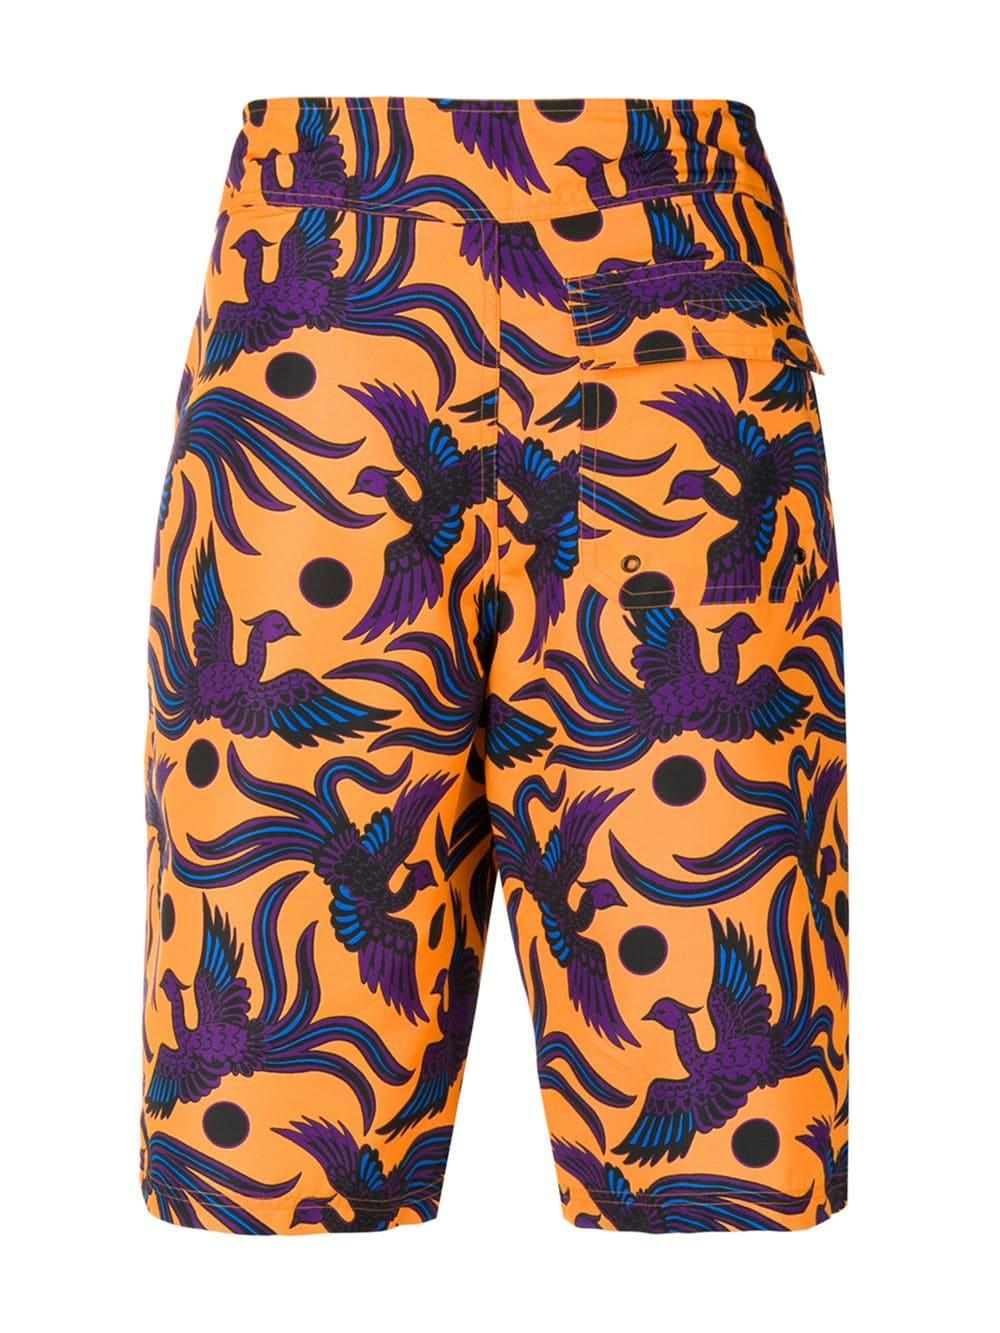 e6f2cd354 Lyst - KENZO Bird Print Swimming Shorts in Orange for Men